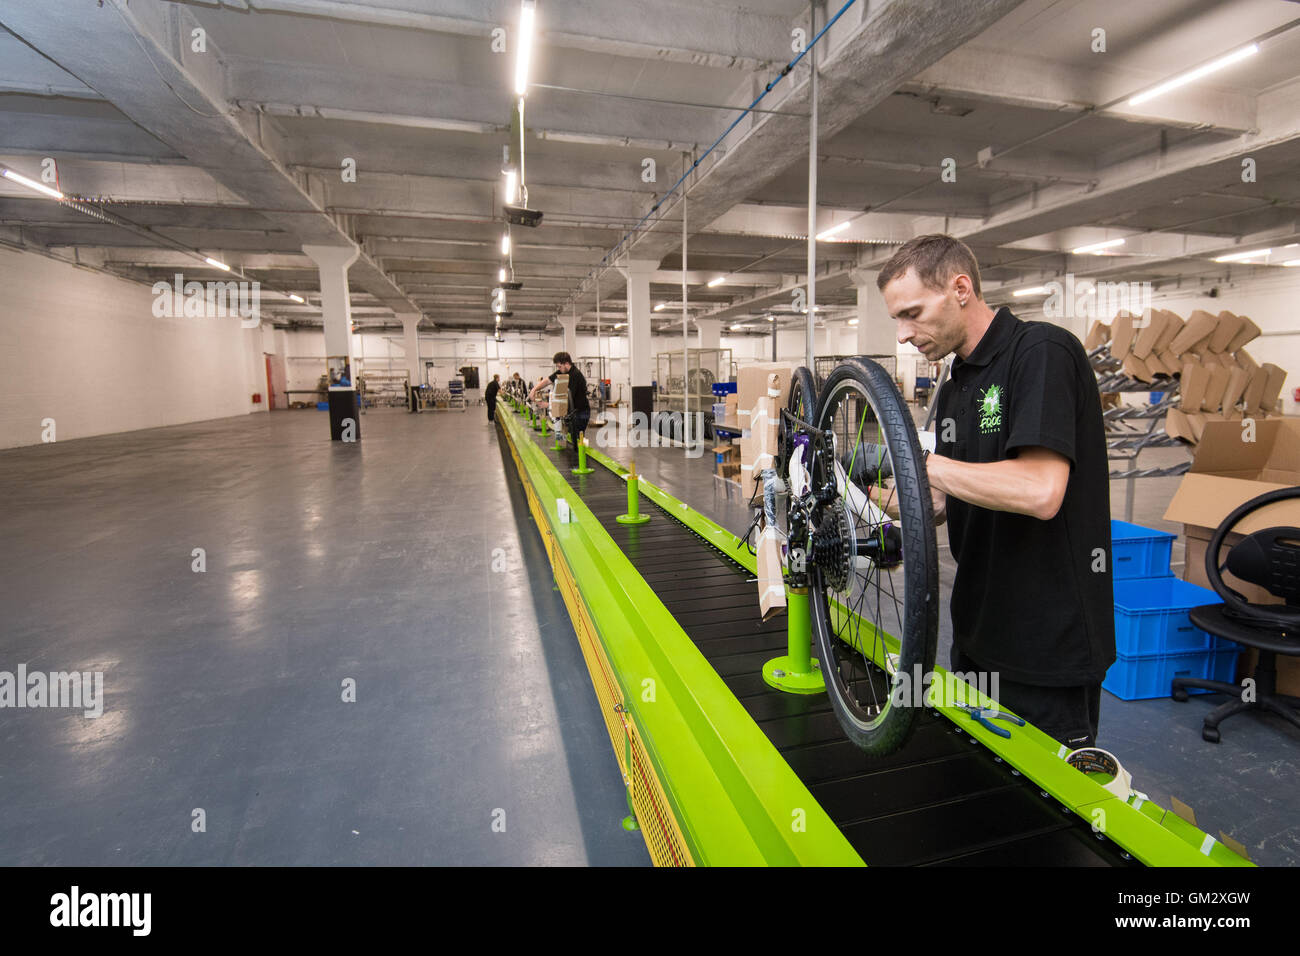 The production line at the Frog Bikes factory - manufacturer of children's bicycles in Pontypool on the day - Stock Image